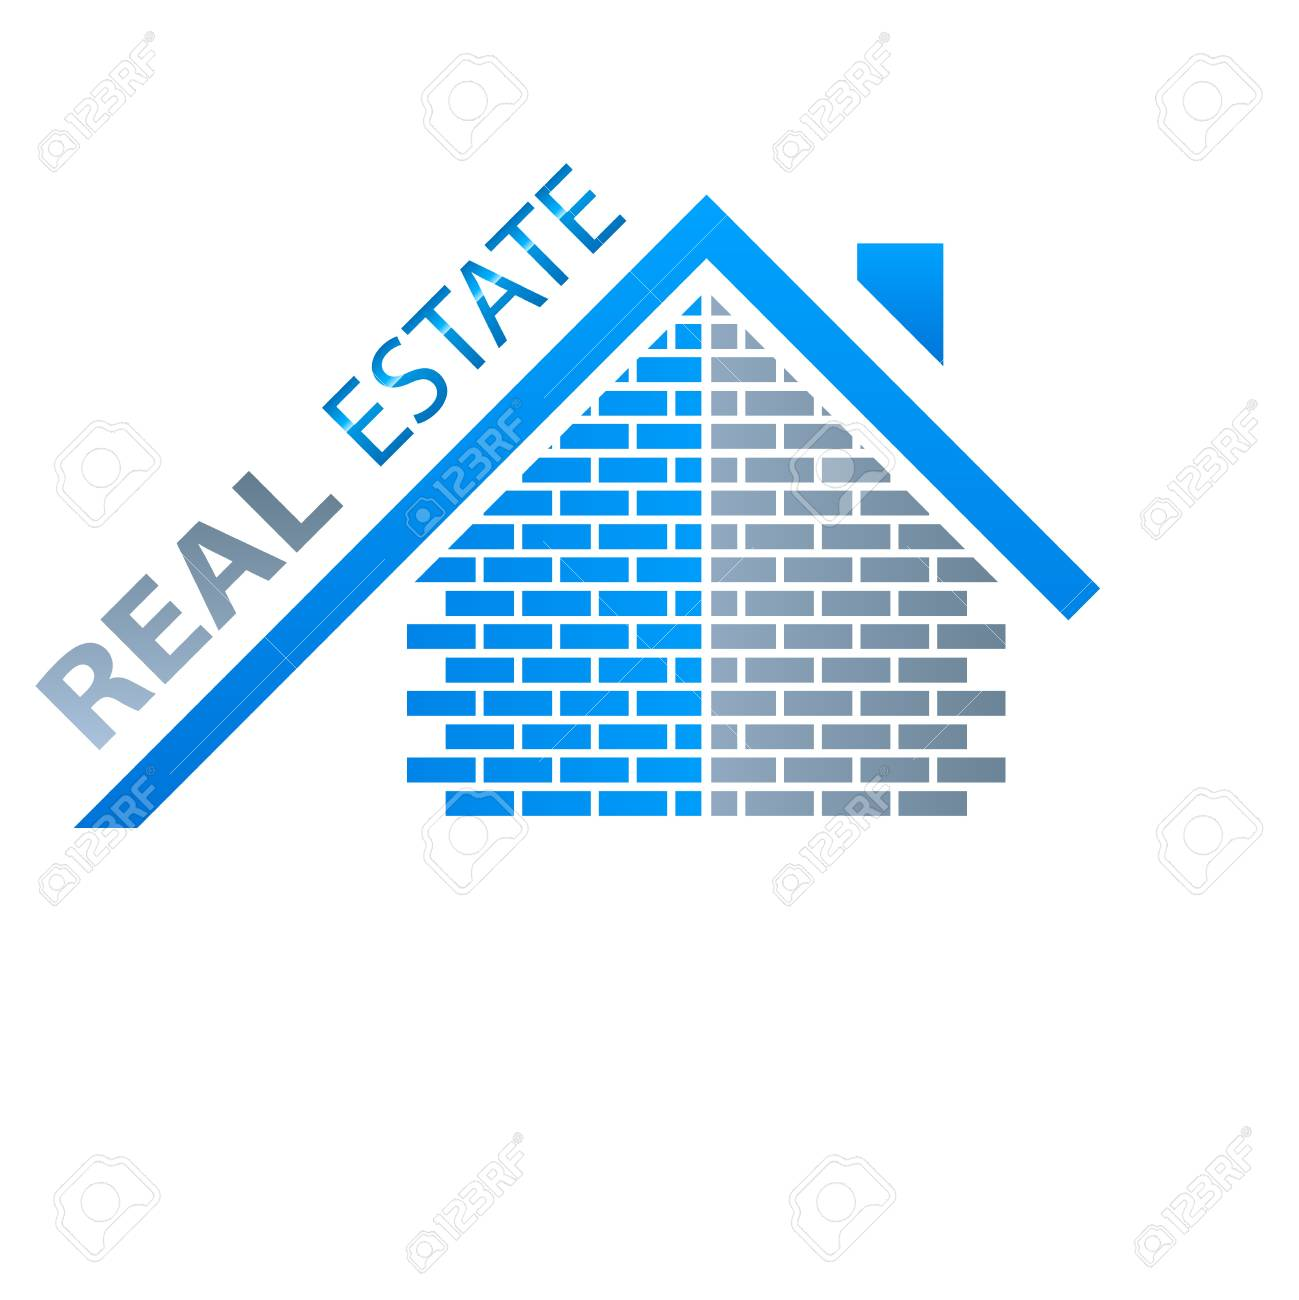 house, real estate sign Stock Vector - 15952578